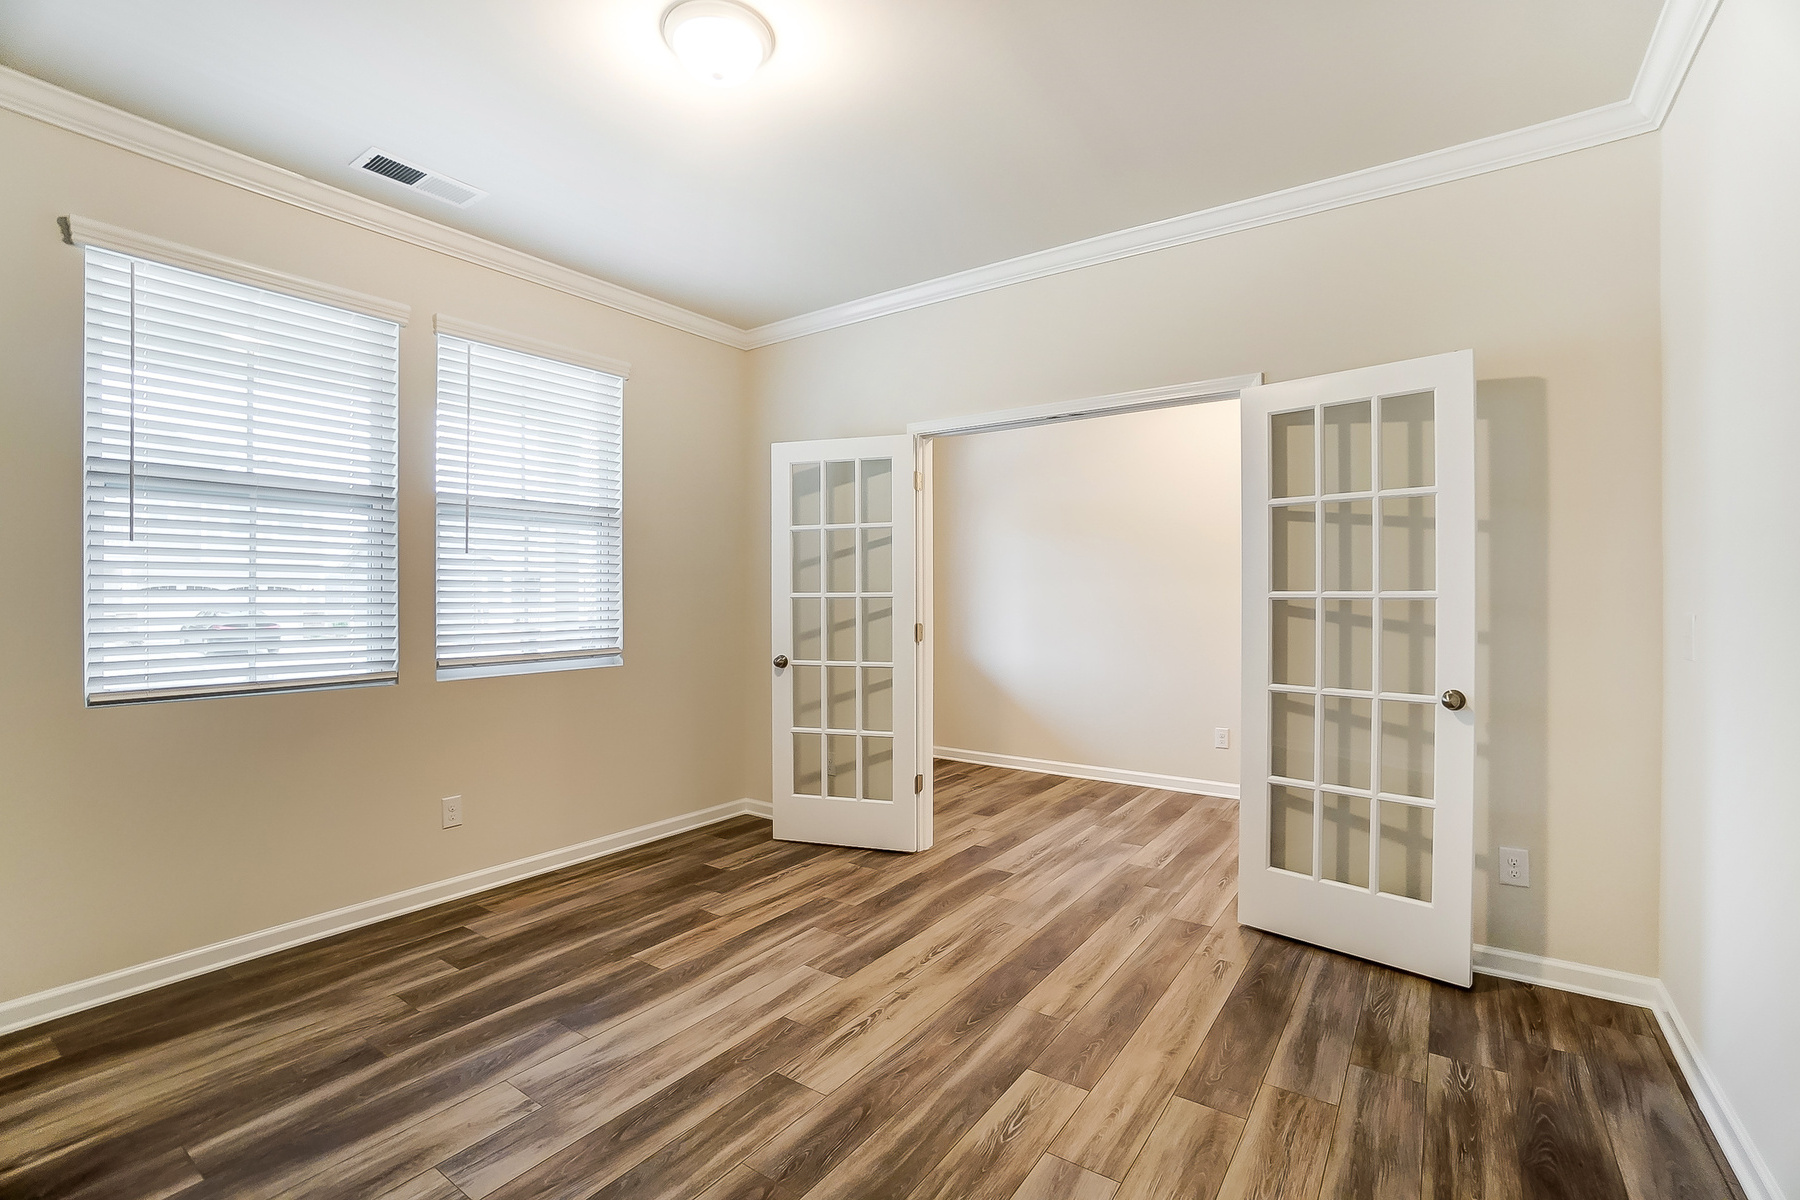 Evelyn Plan Study Room at Braeburn in Indian Trail North Carolina by Mattamy Homes